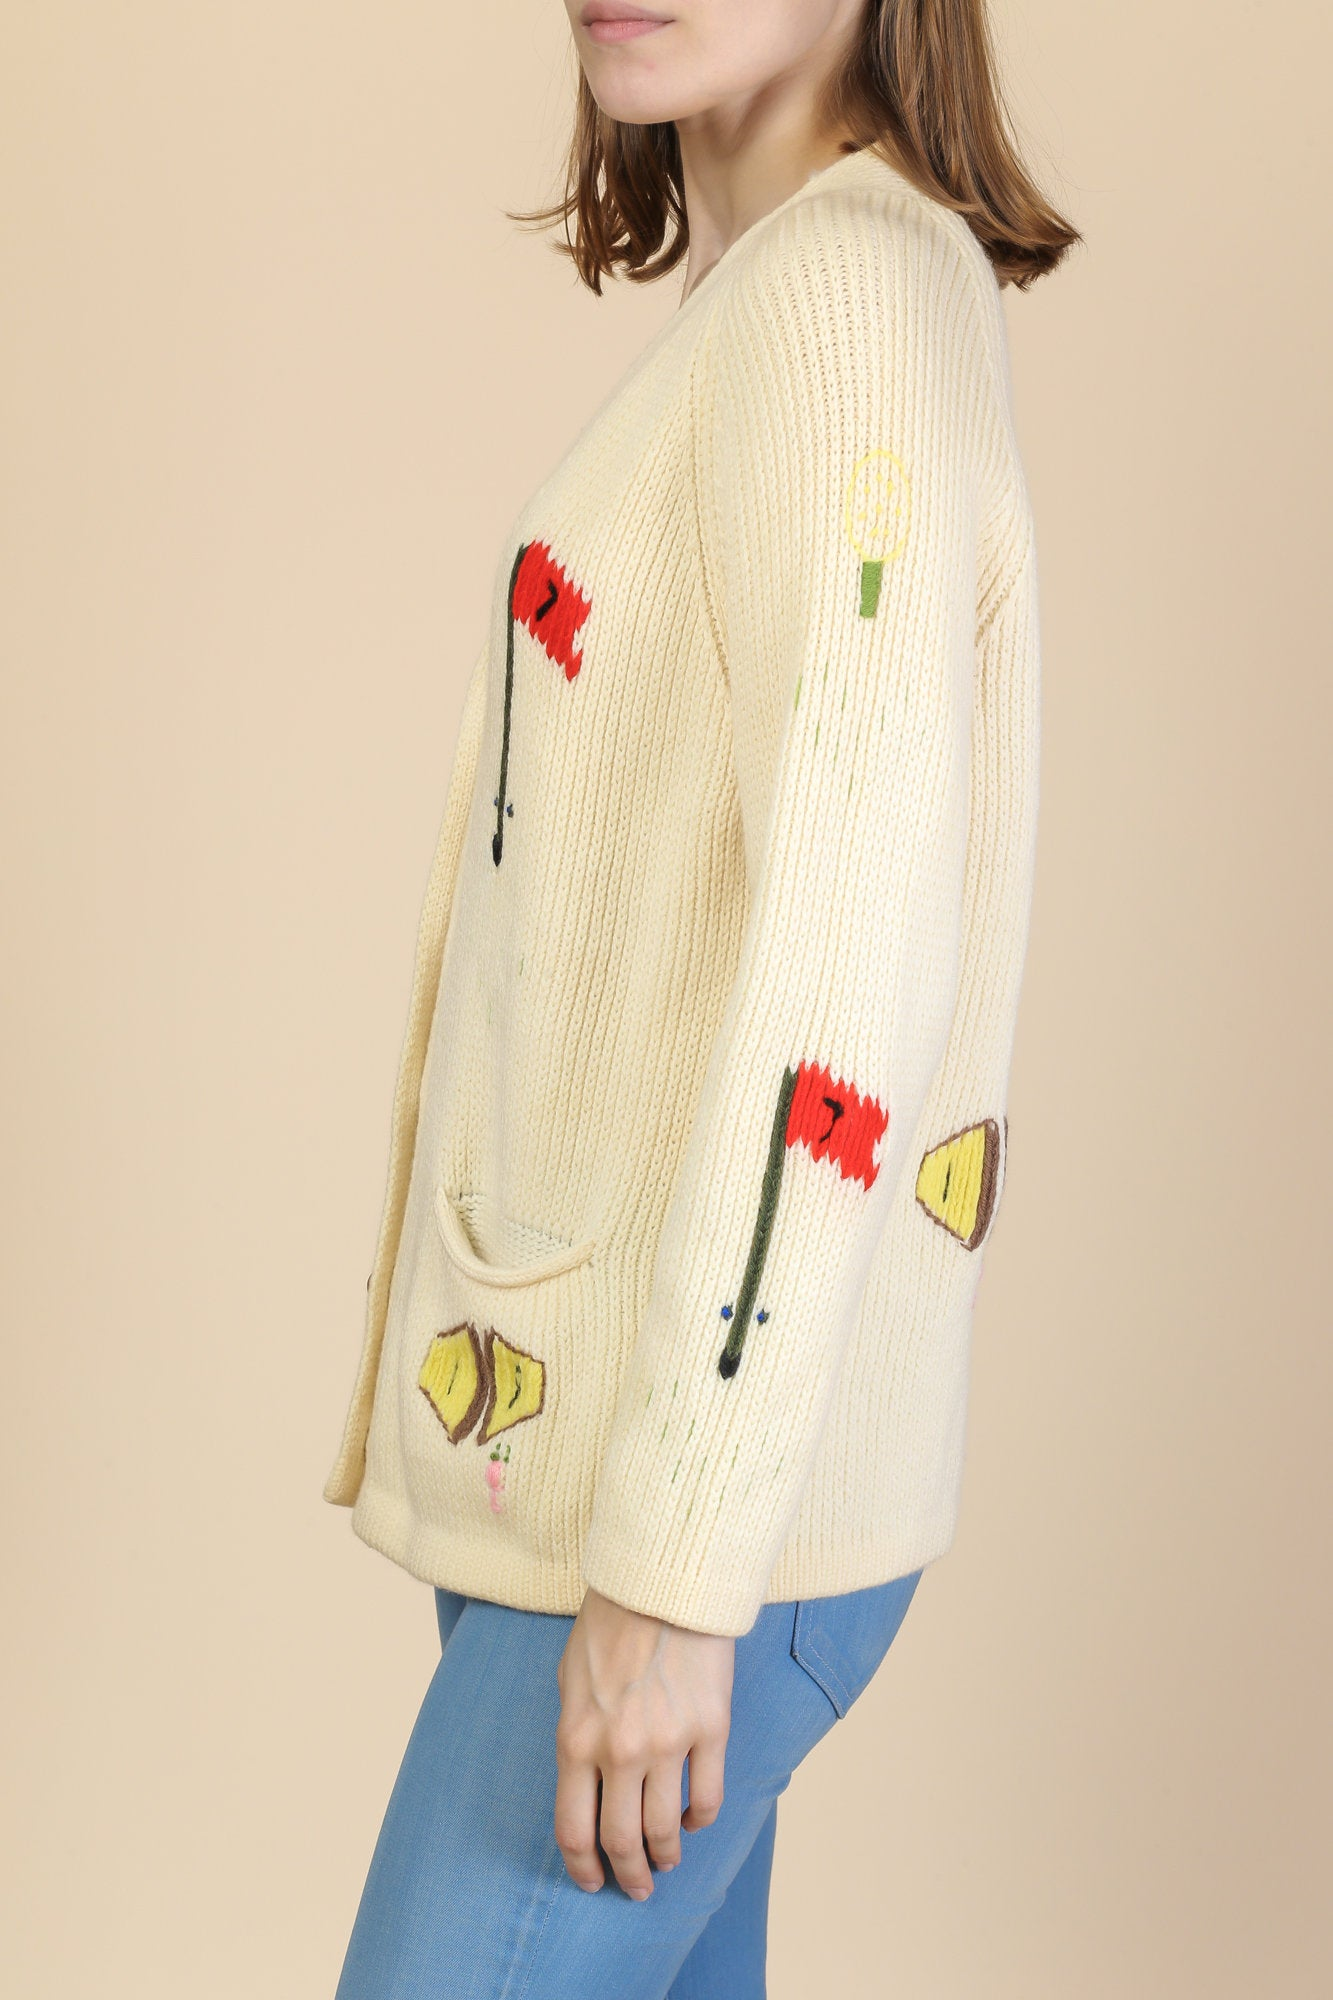 Vintage 70s Golf Cardigan - Small